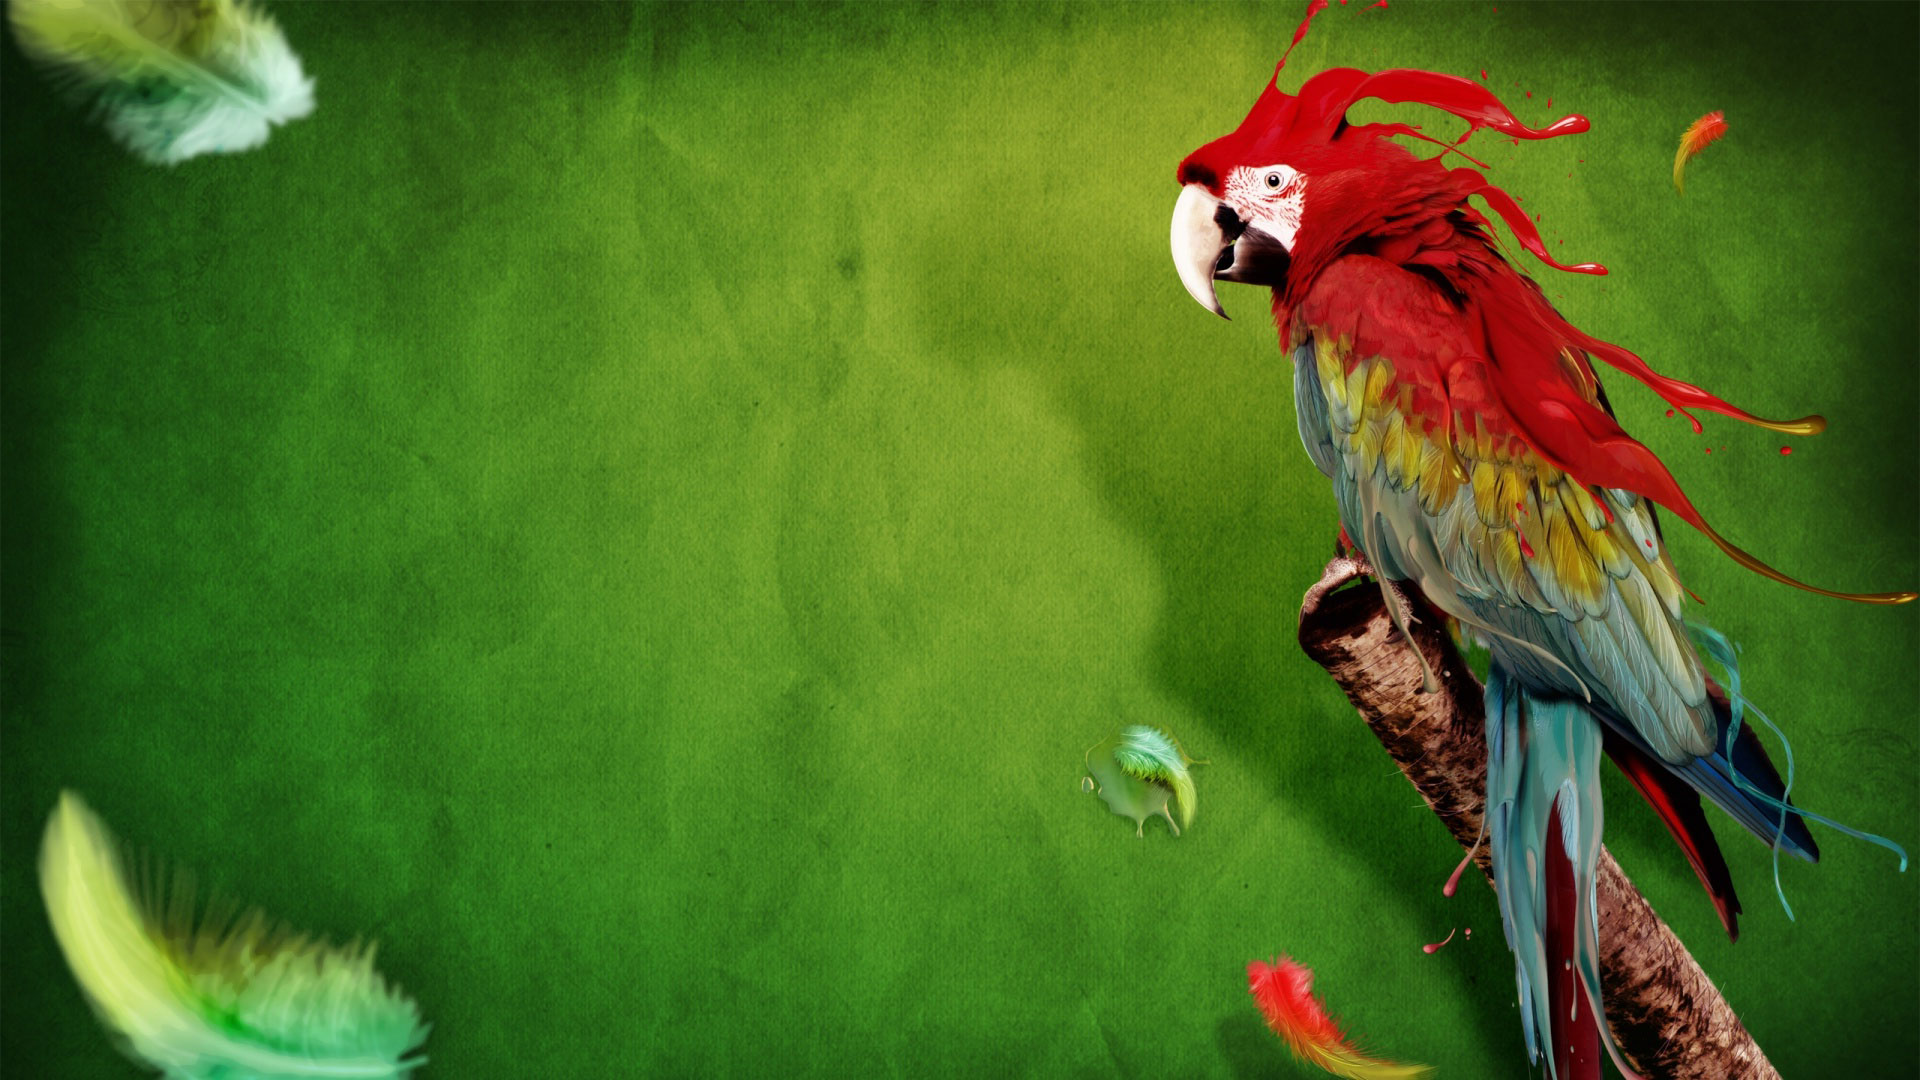 desktop parrot image download - photo #17